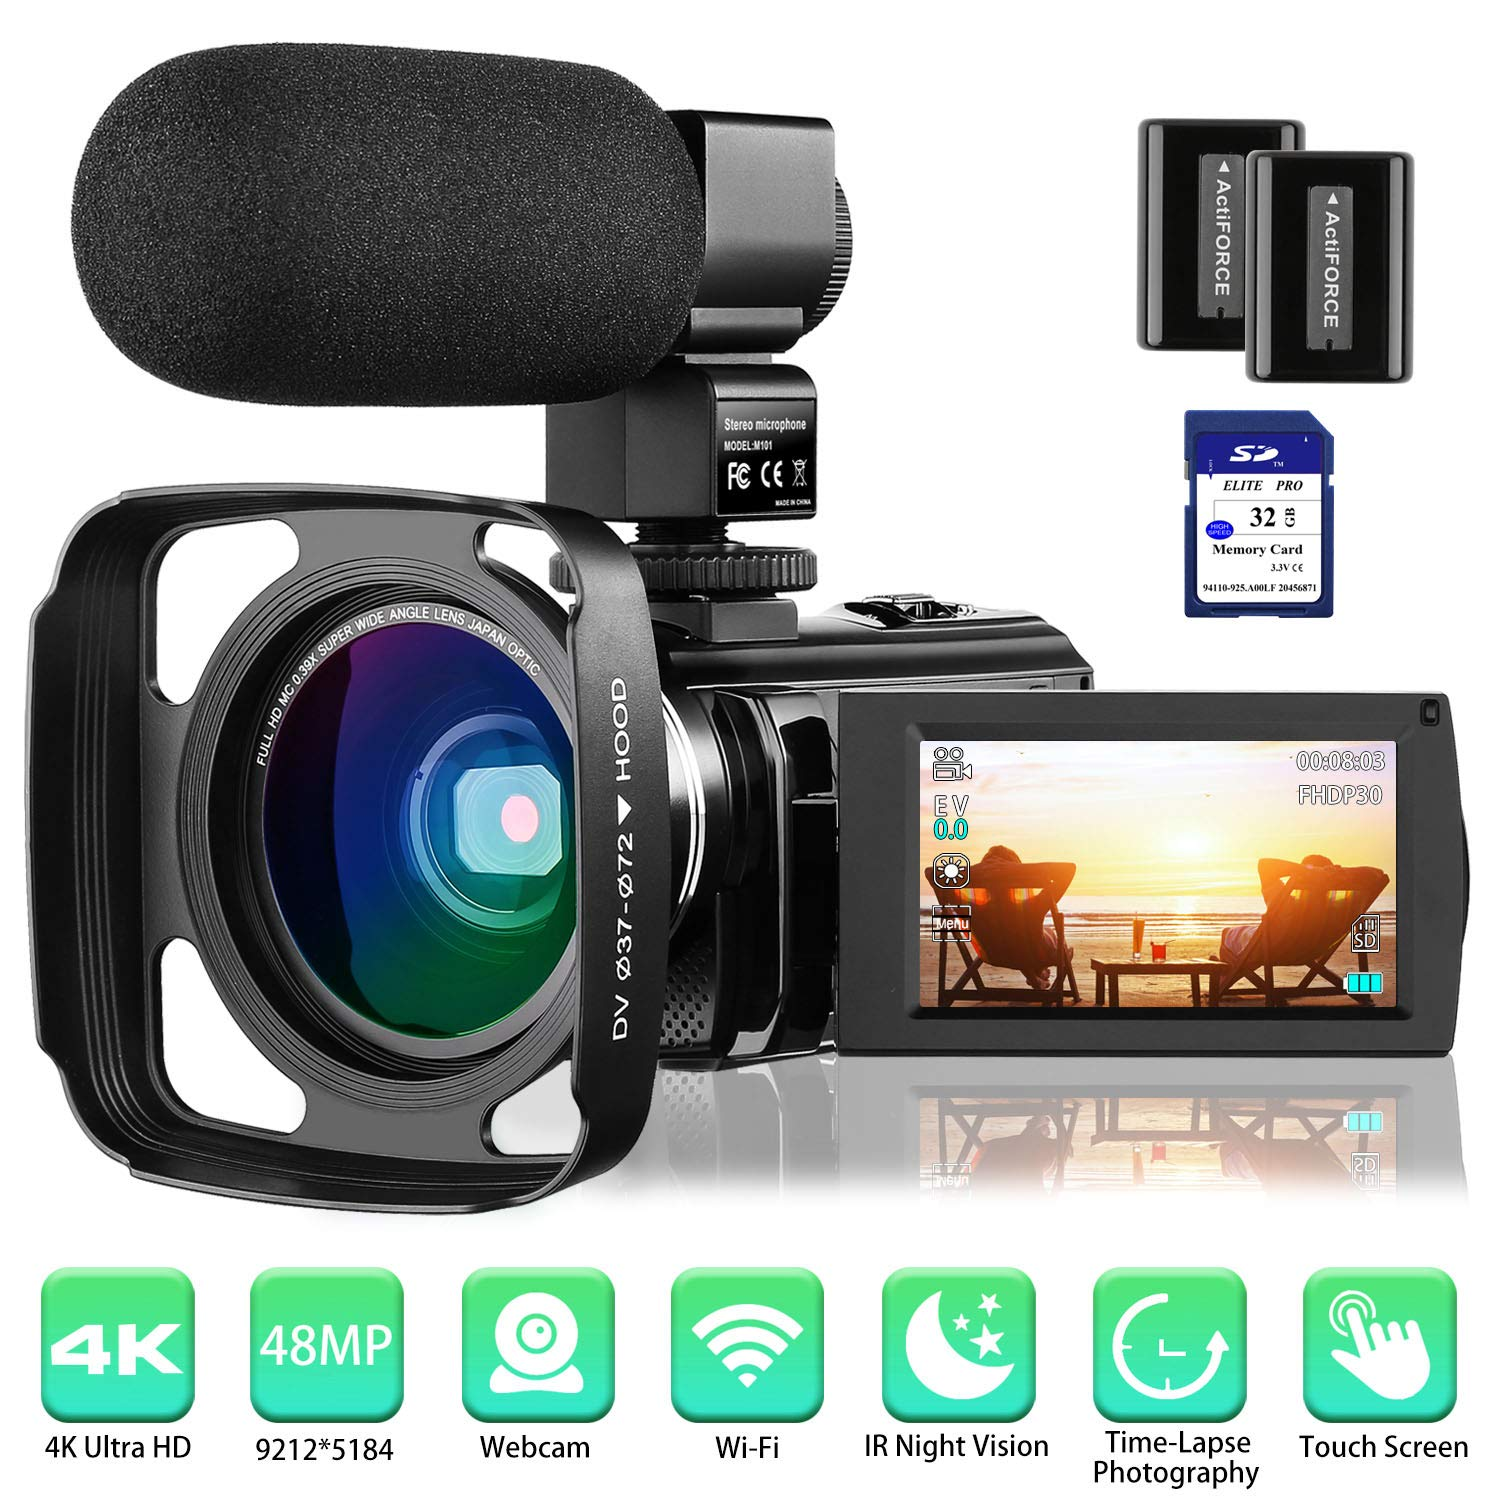 8 Best Camcorder under 500 in 2020 buying guides 6